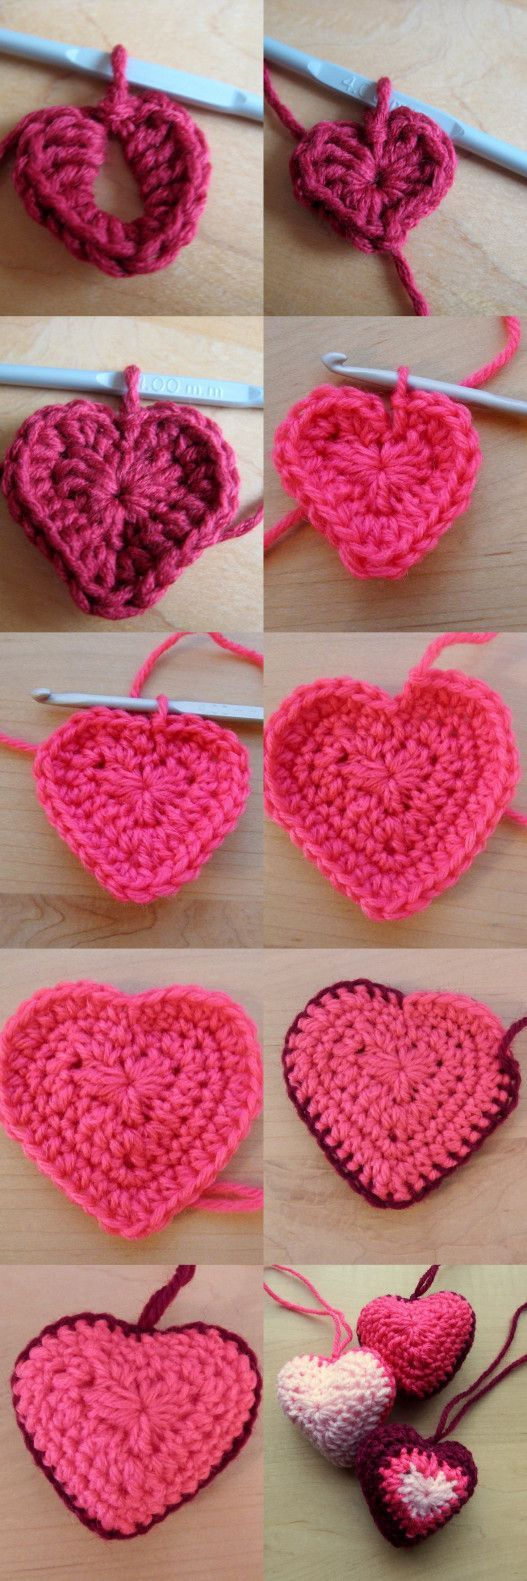 Crochet heart decorations - free pattern from Make My Day Creative ...